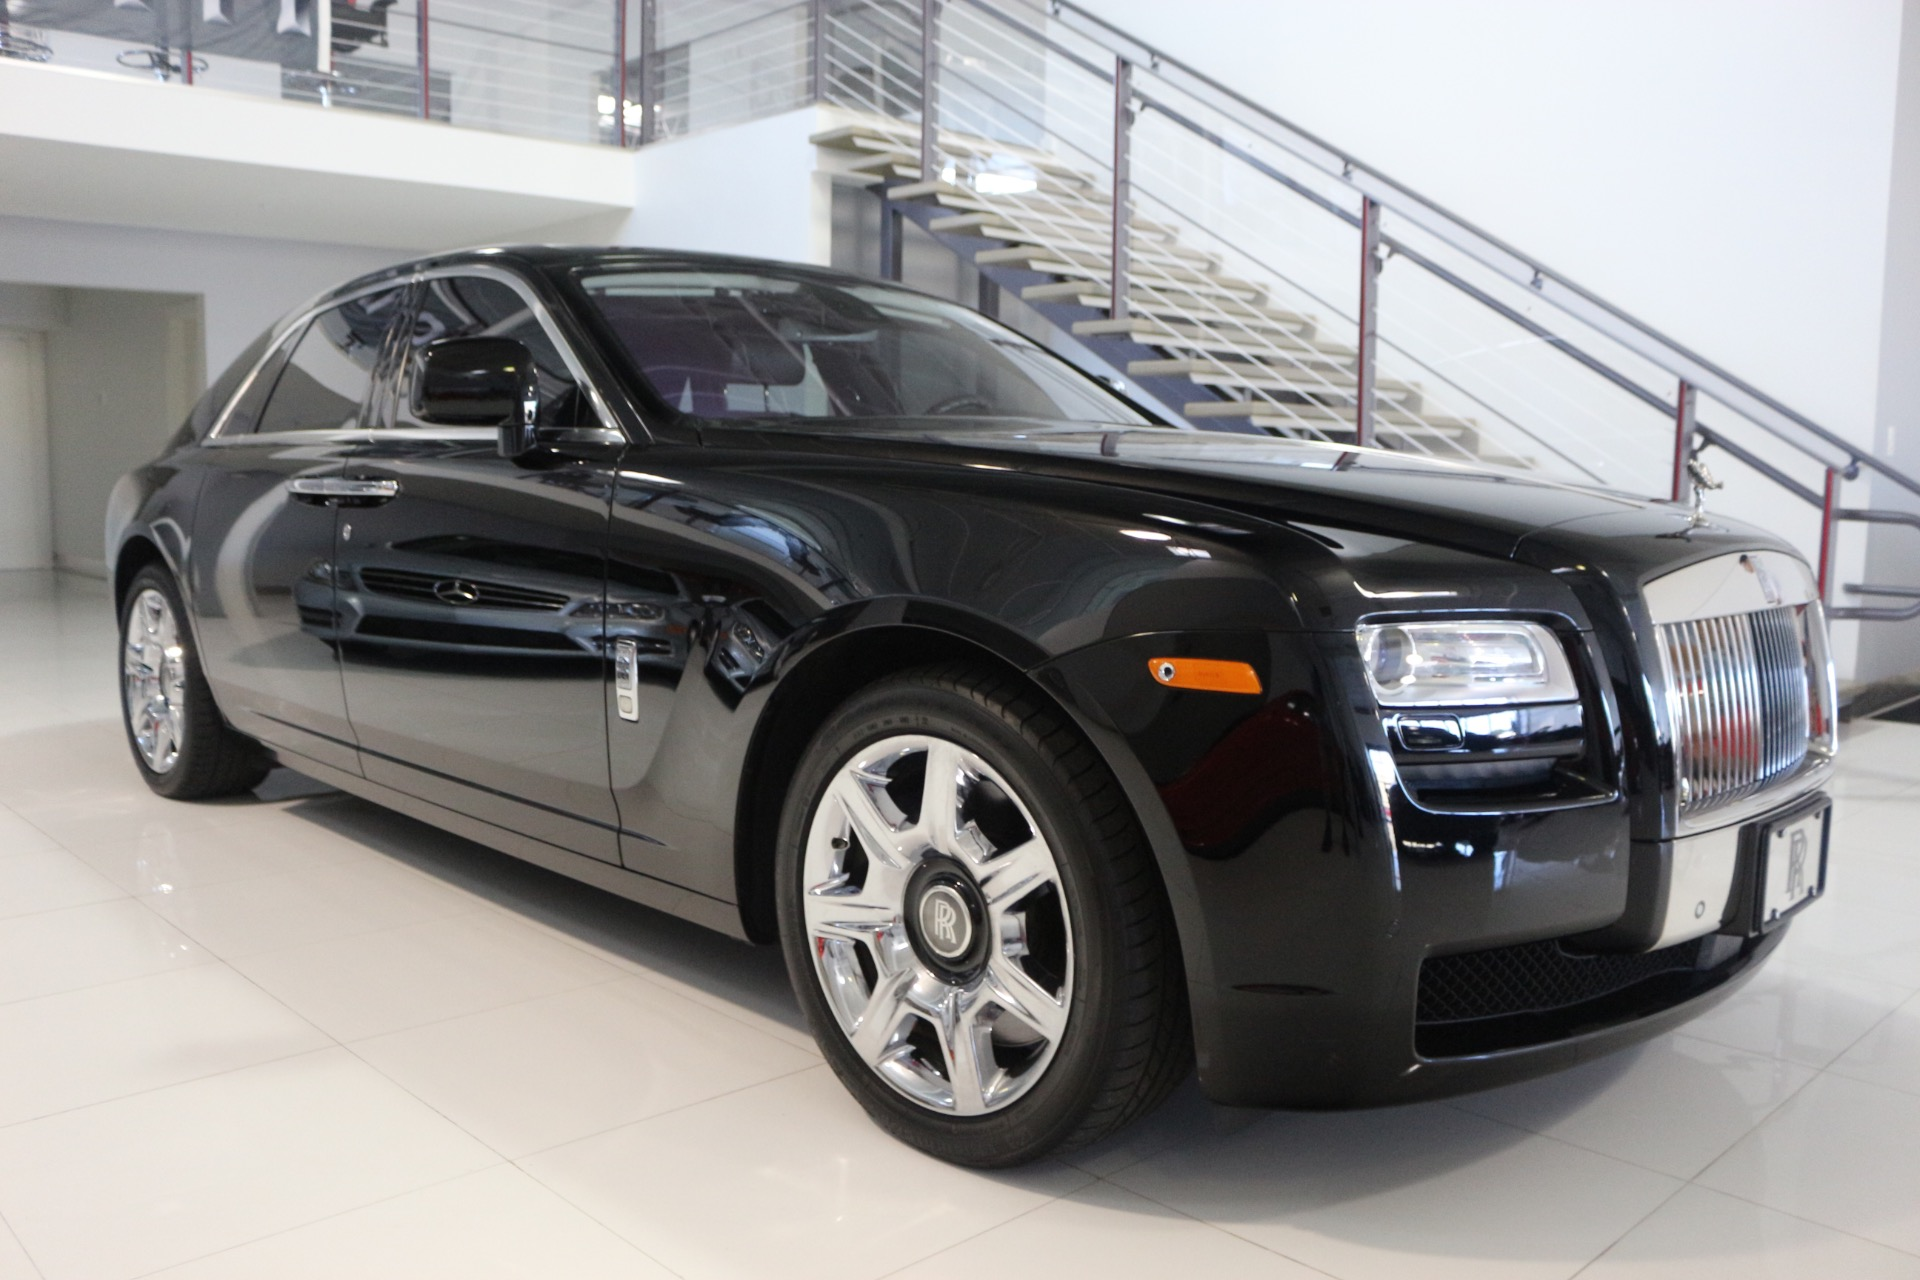 2010 rolls royce ghost for sale in miami fl x49113 all sports motor network. Black Bedroom Furniture Sets. Home Design Ideas